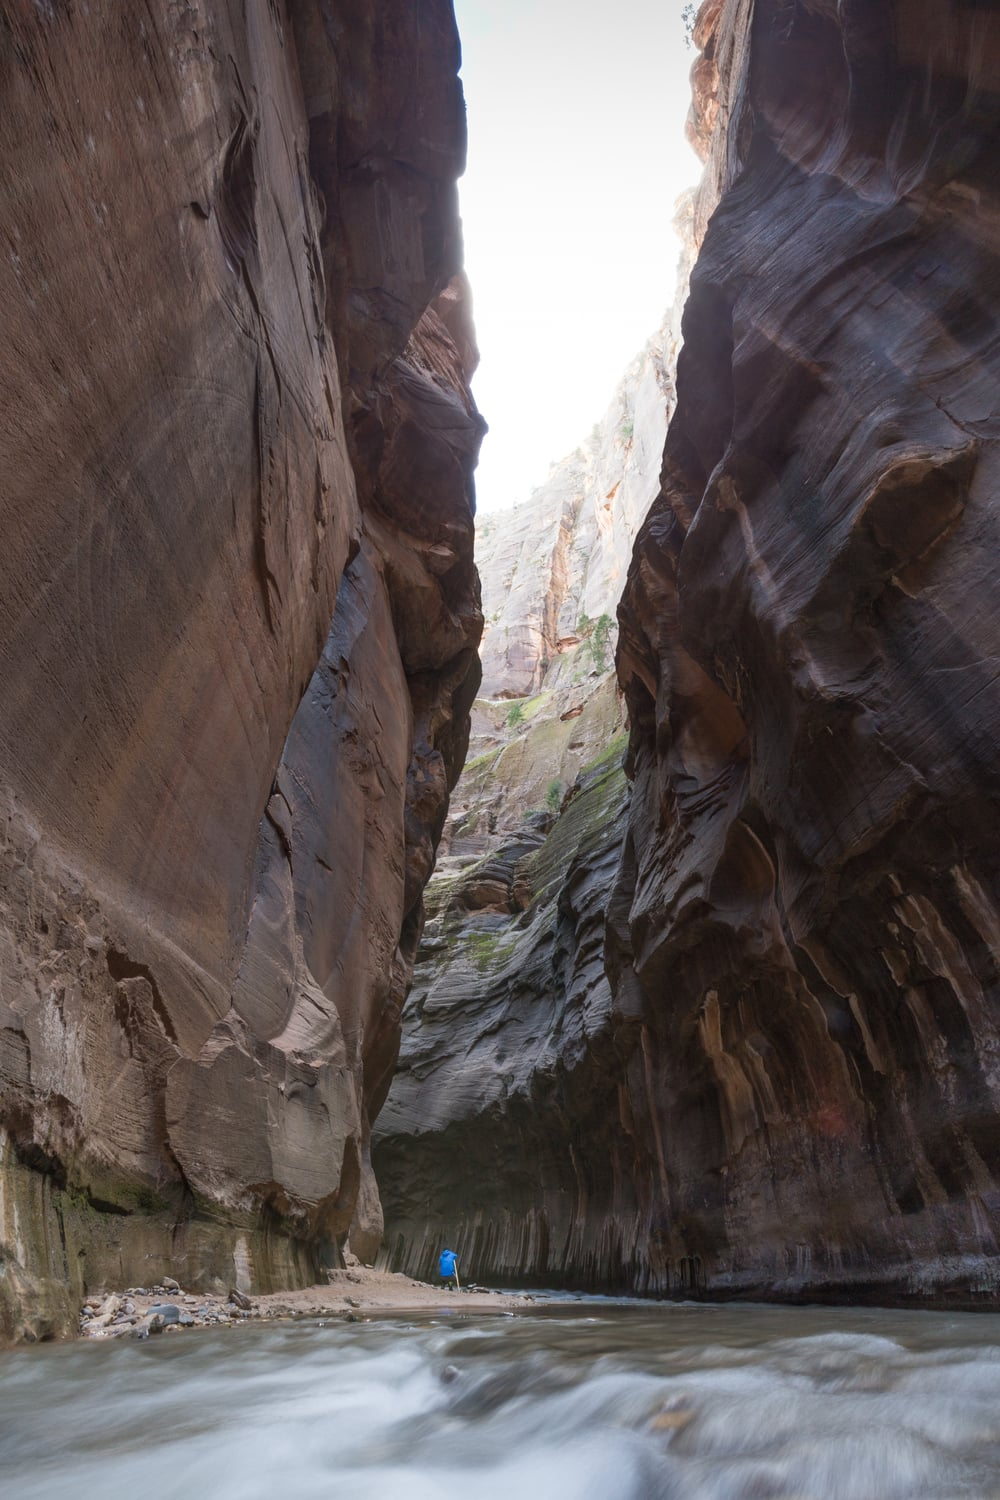 A hiker being dwarfed by the canyon walls